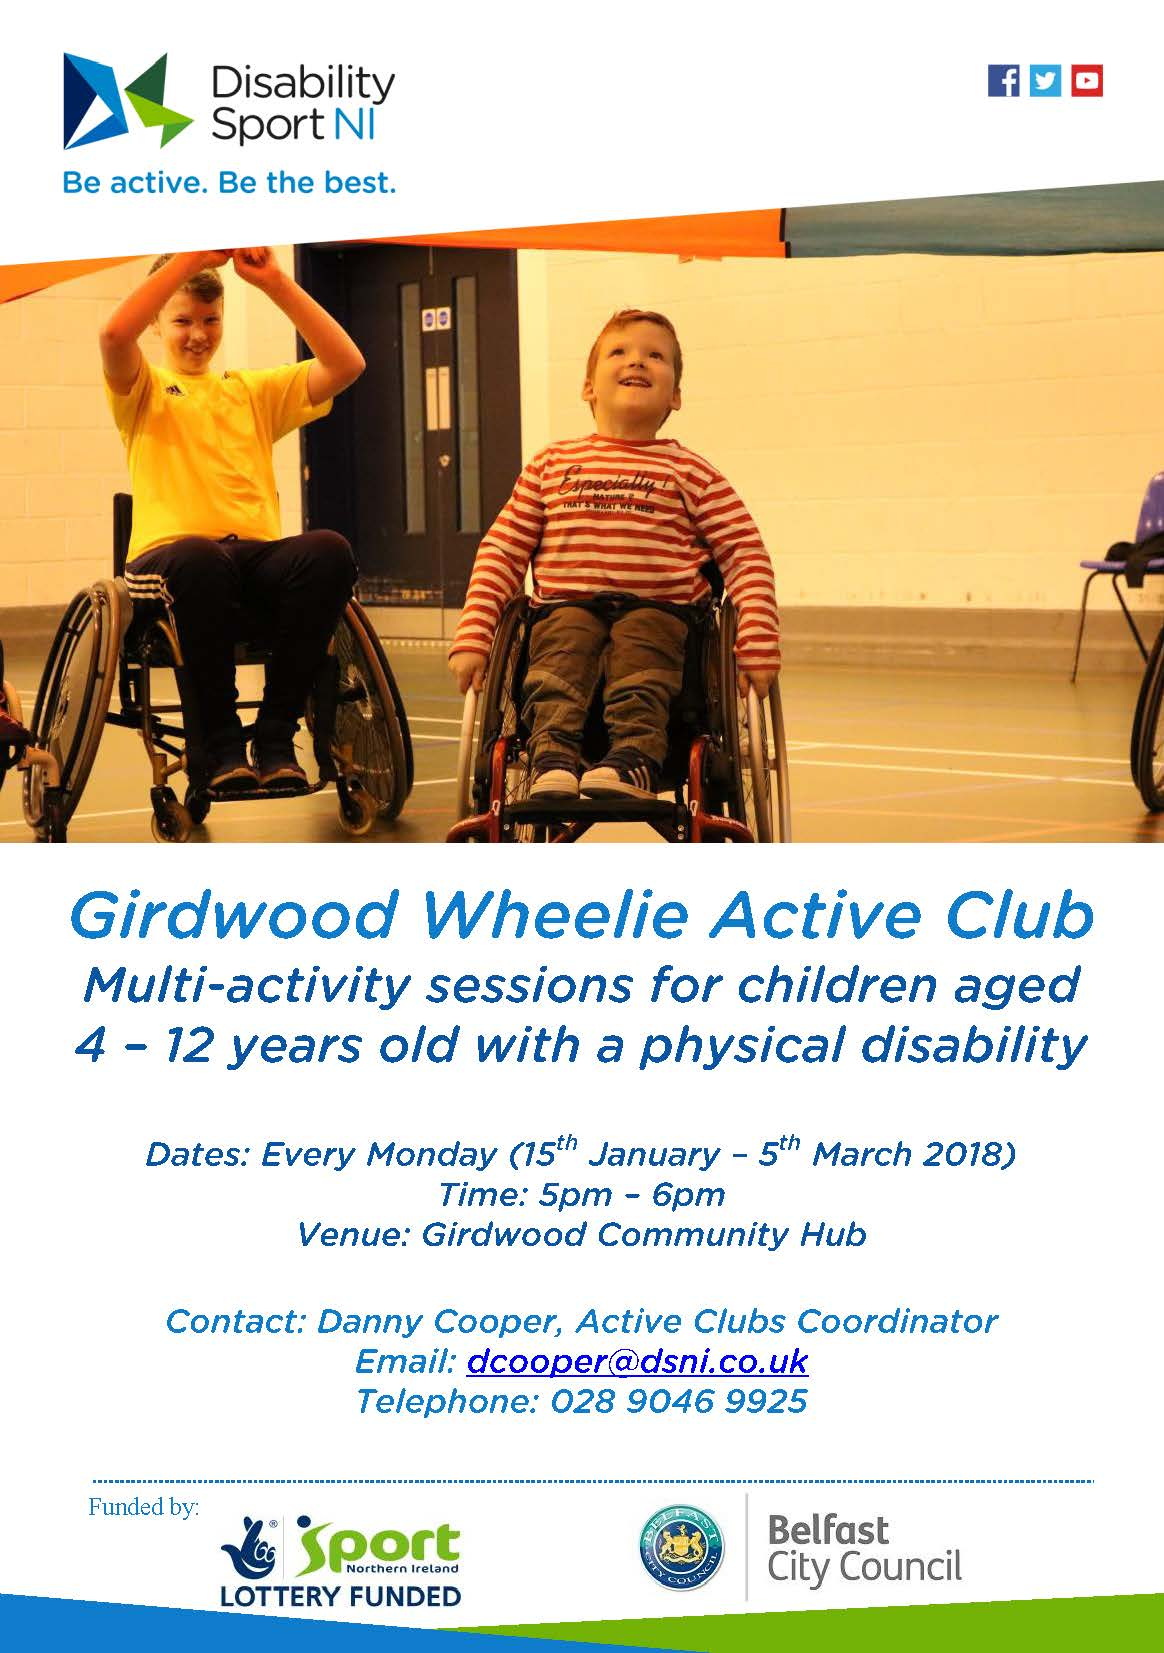 Girdwood Wheelie Active Club Flyer. Alternative formats available upon request